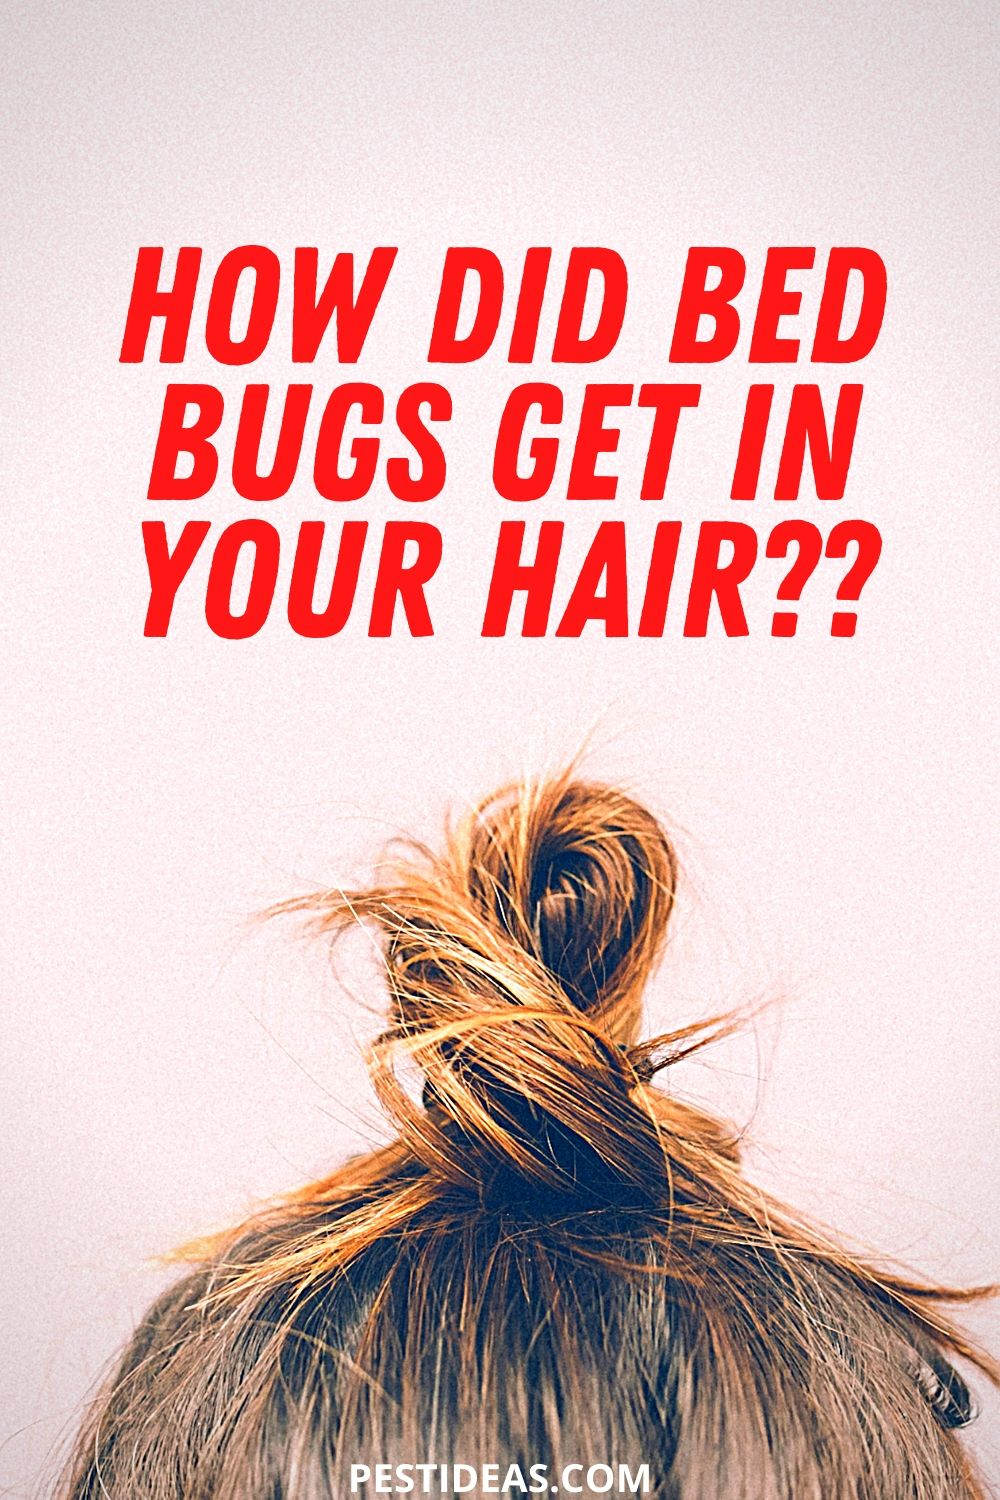 How did bed bugs get in your hair